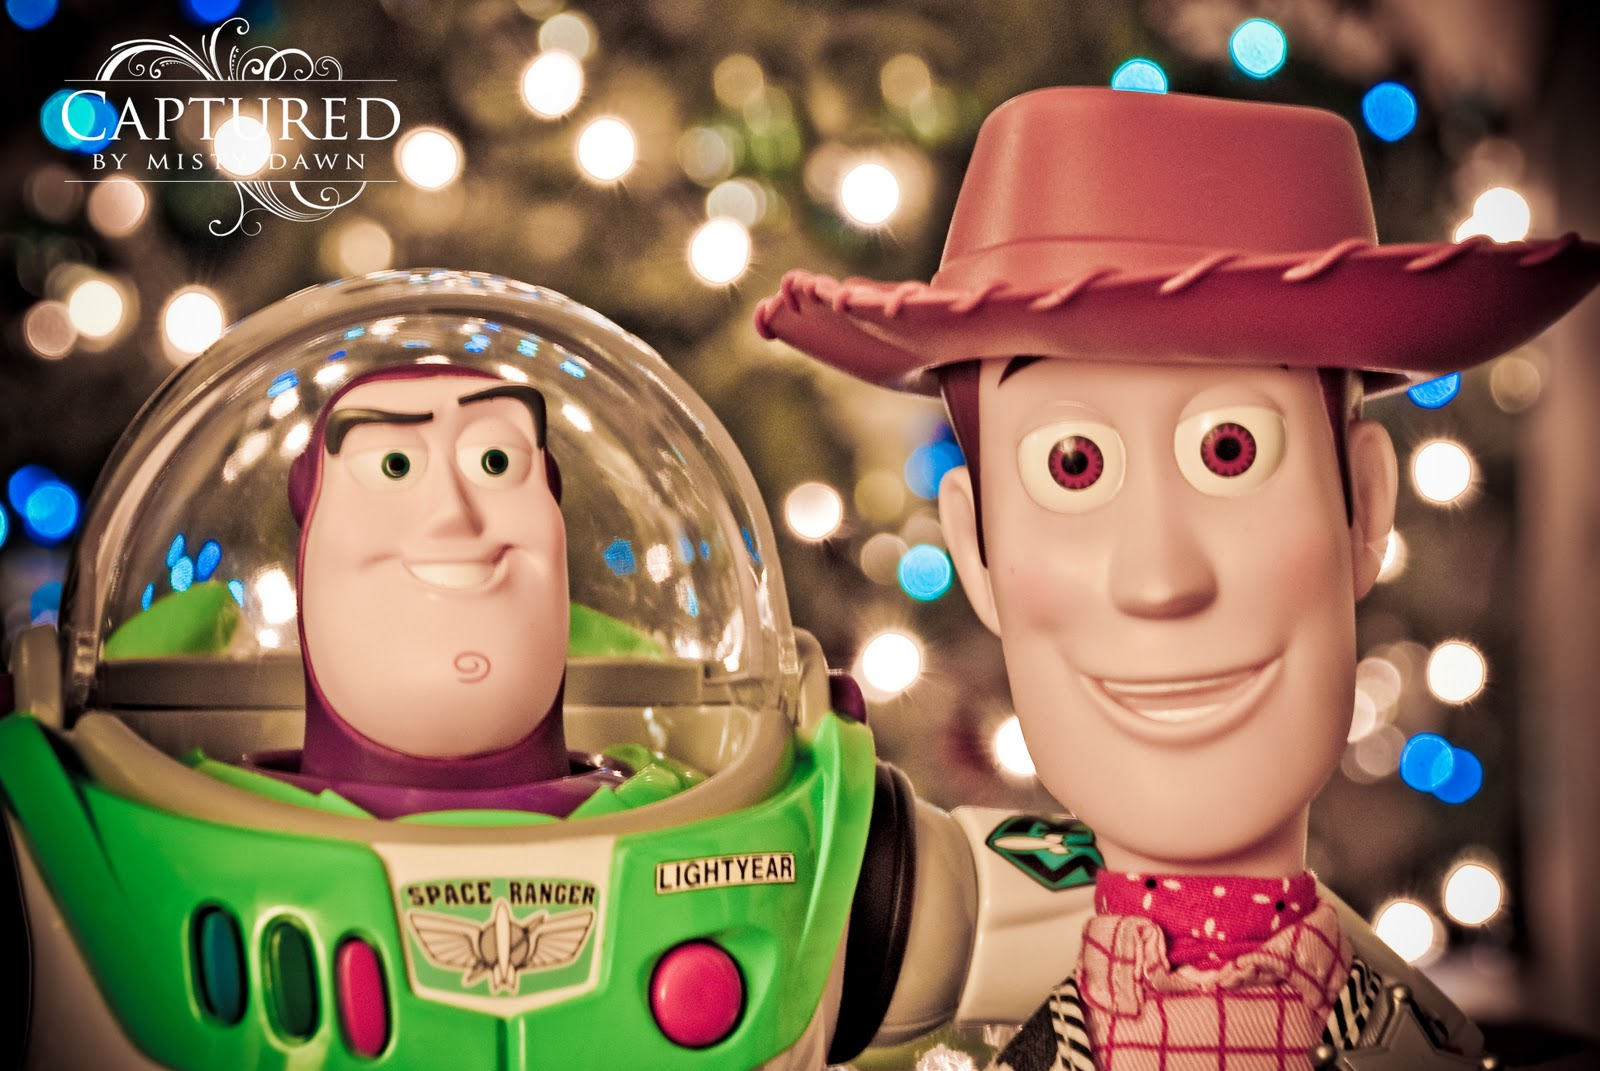 day 359 merry christmas toy story style - Toy Story Christmas Special